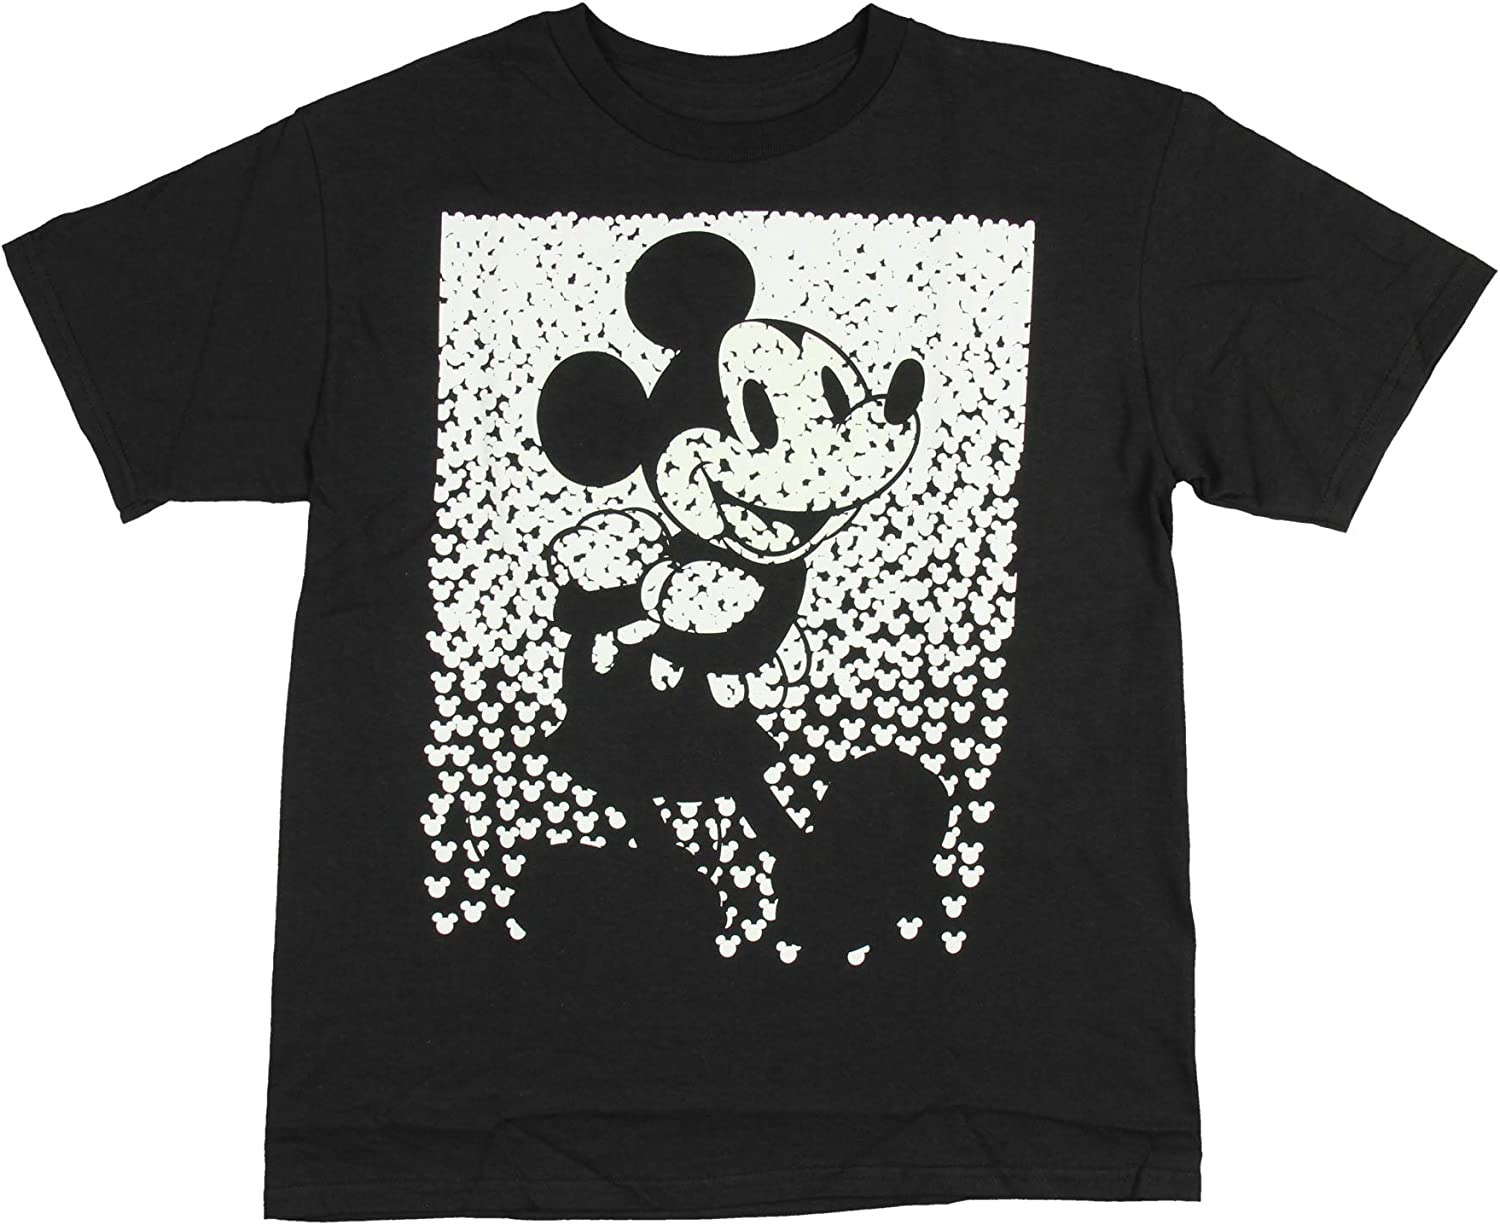 Disney Mickey Mouse Repeating Head Sillouette Glow In The Dark Boys T-Shirt